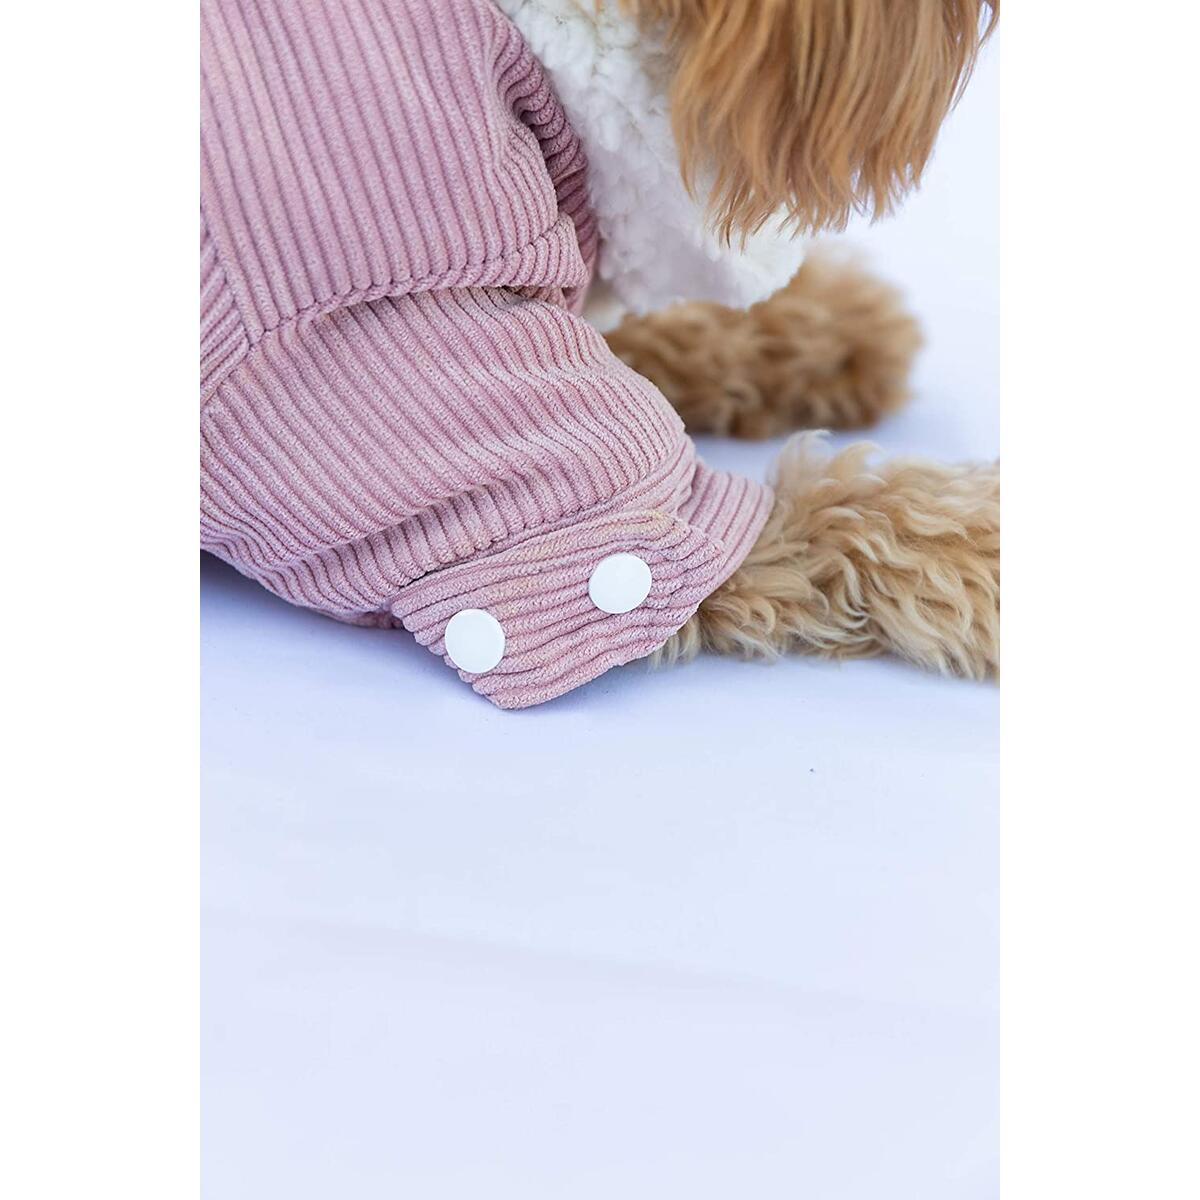 Collaroy Solid Color Corduroy Jacket with Sherpa Lining for Small Dog Breeds (All Sizes)